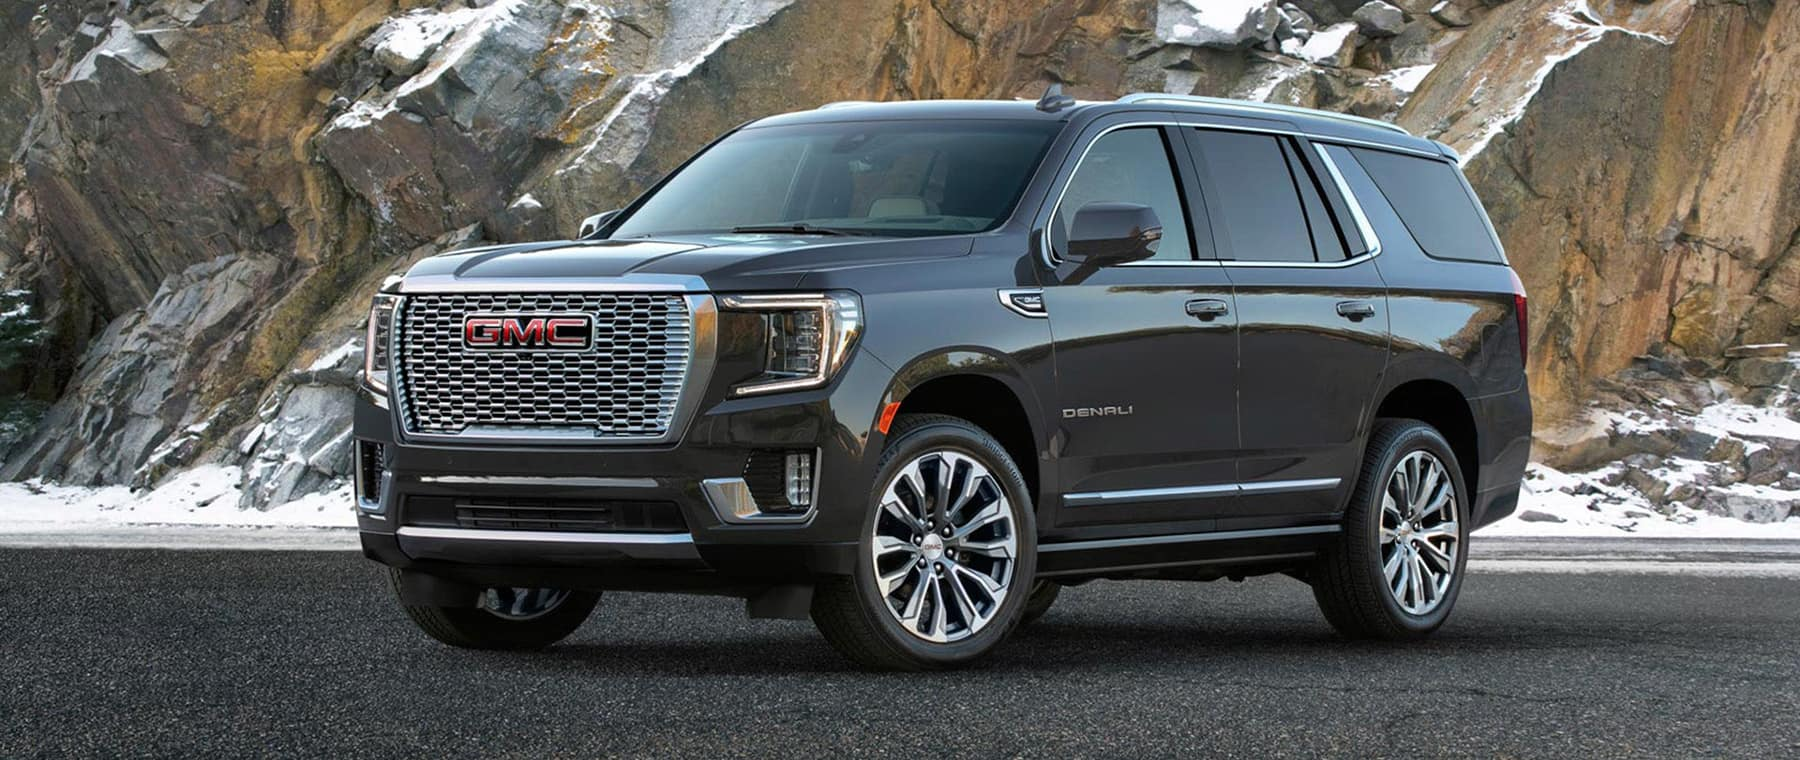 2021 GMC Yukon black on side road 3/4 angle